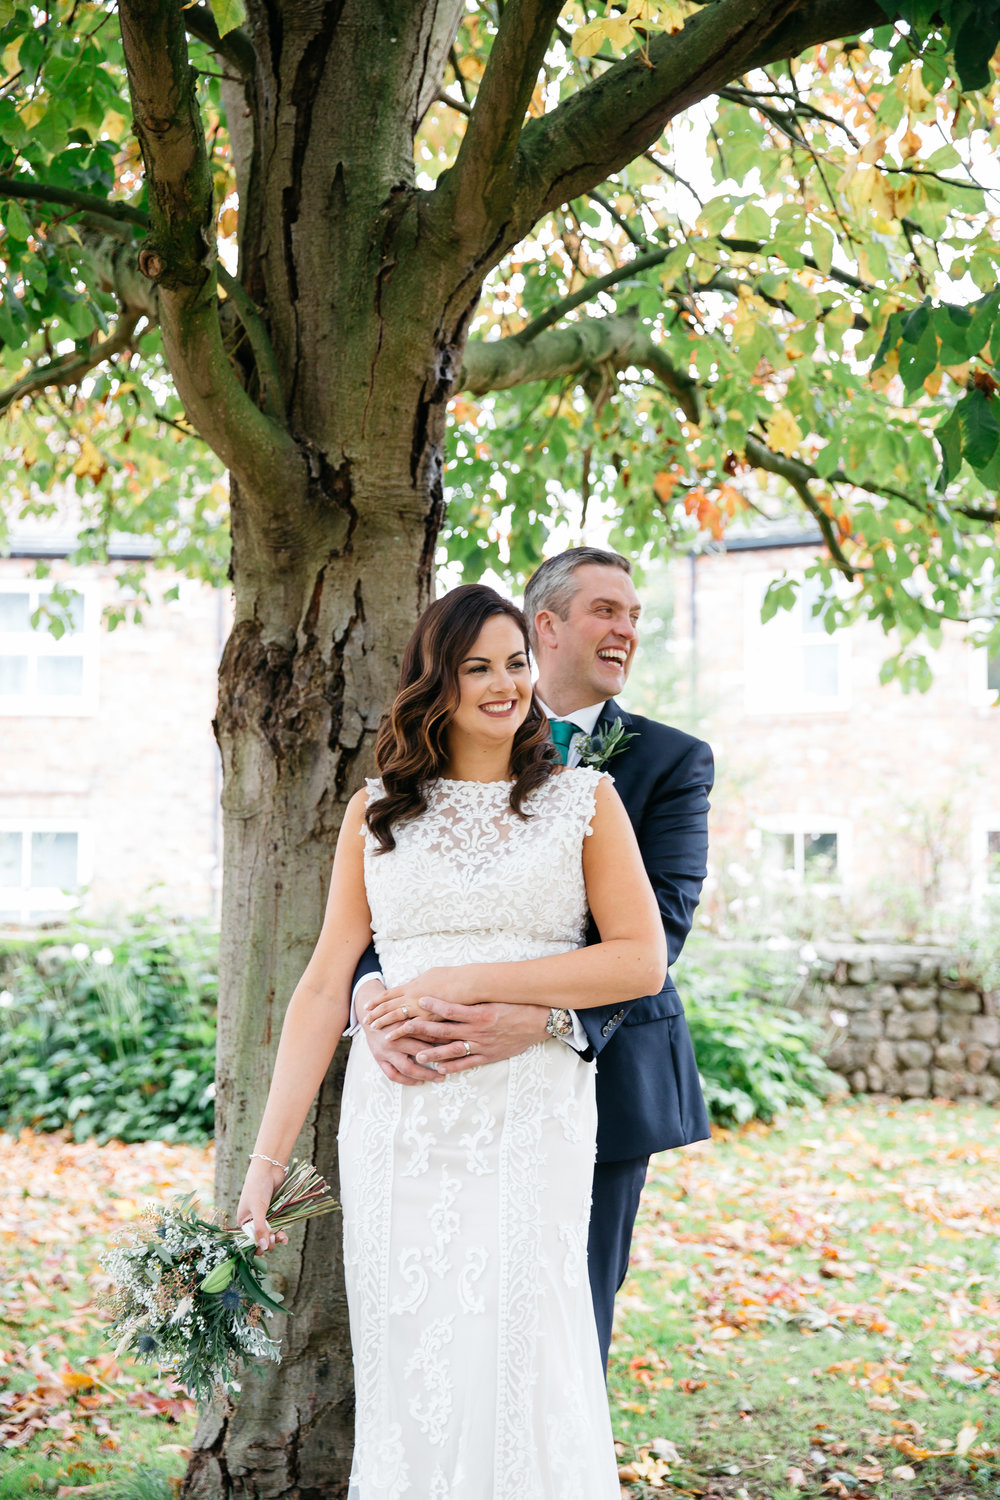 Bride and Groom by a tree | Harrogate Wedding Photographer